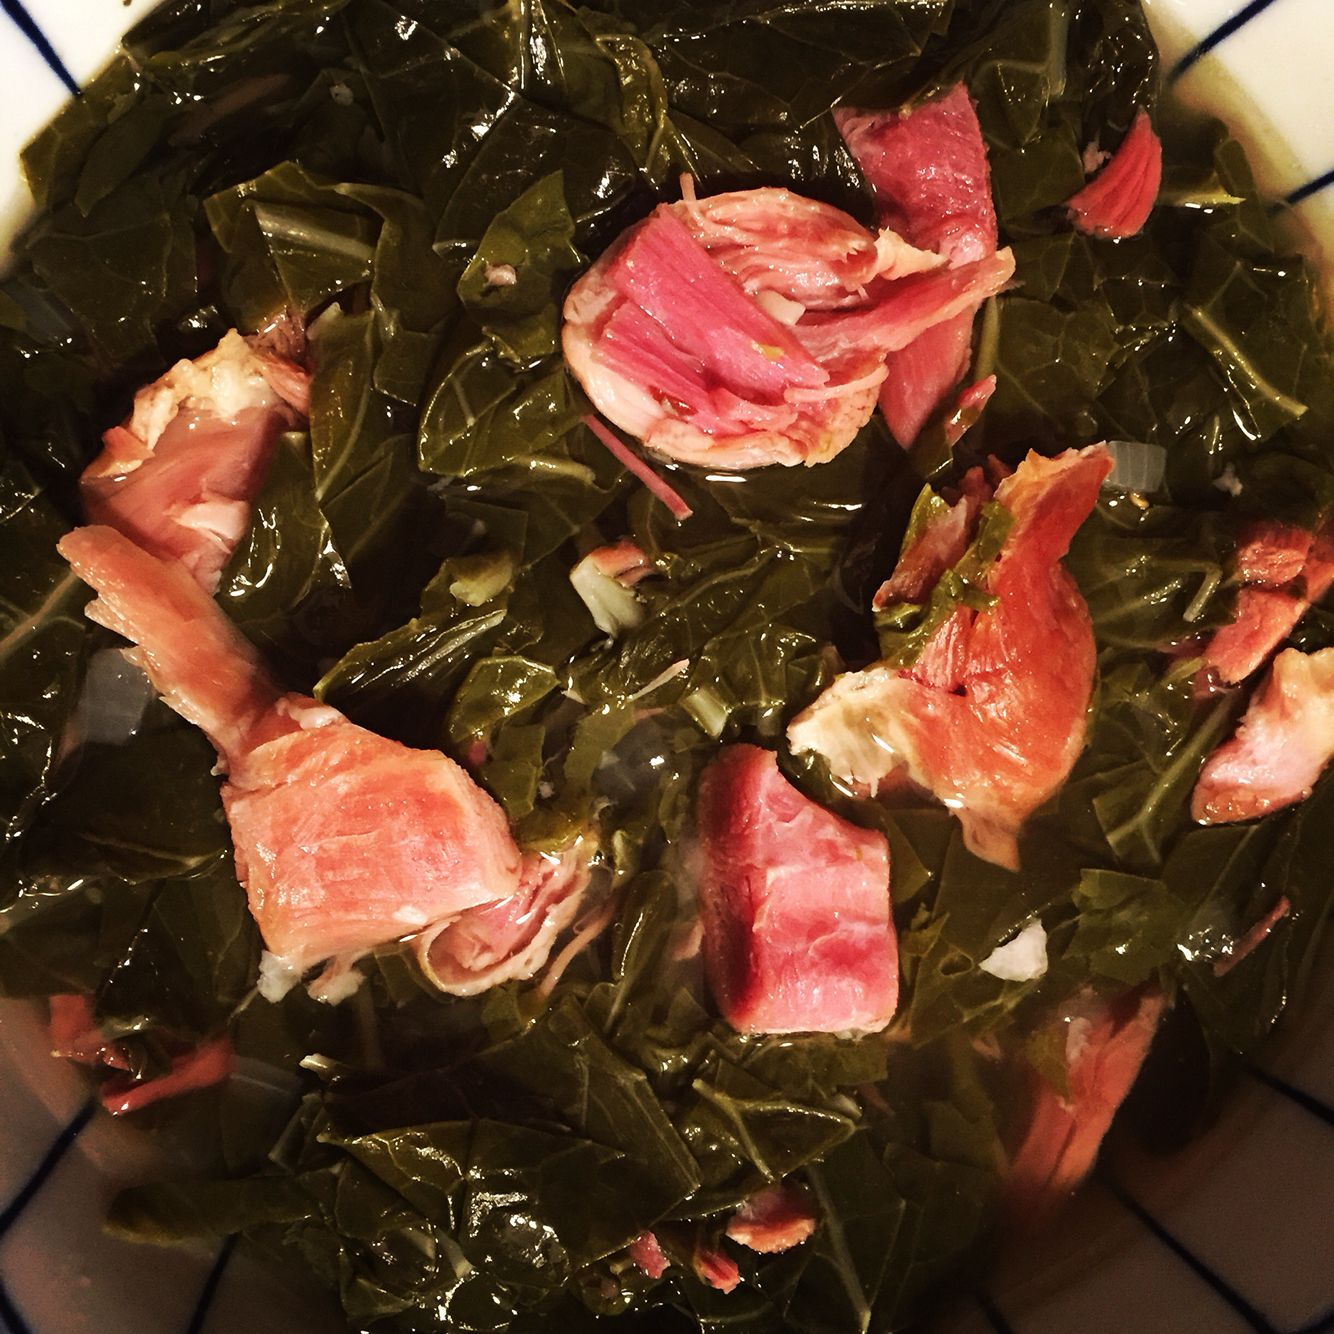 Ham shanks and collard greens